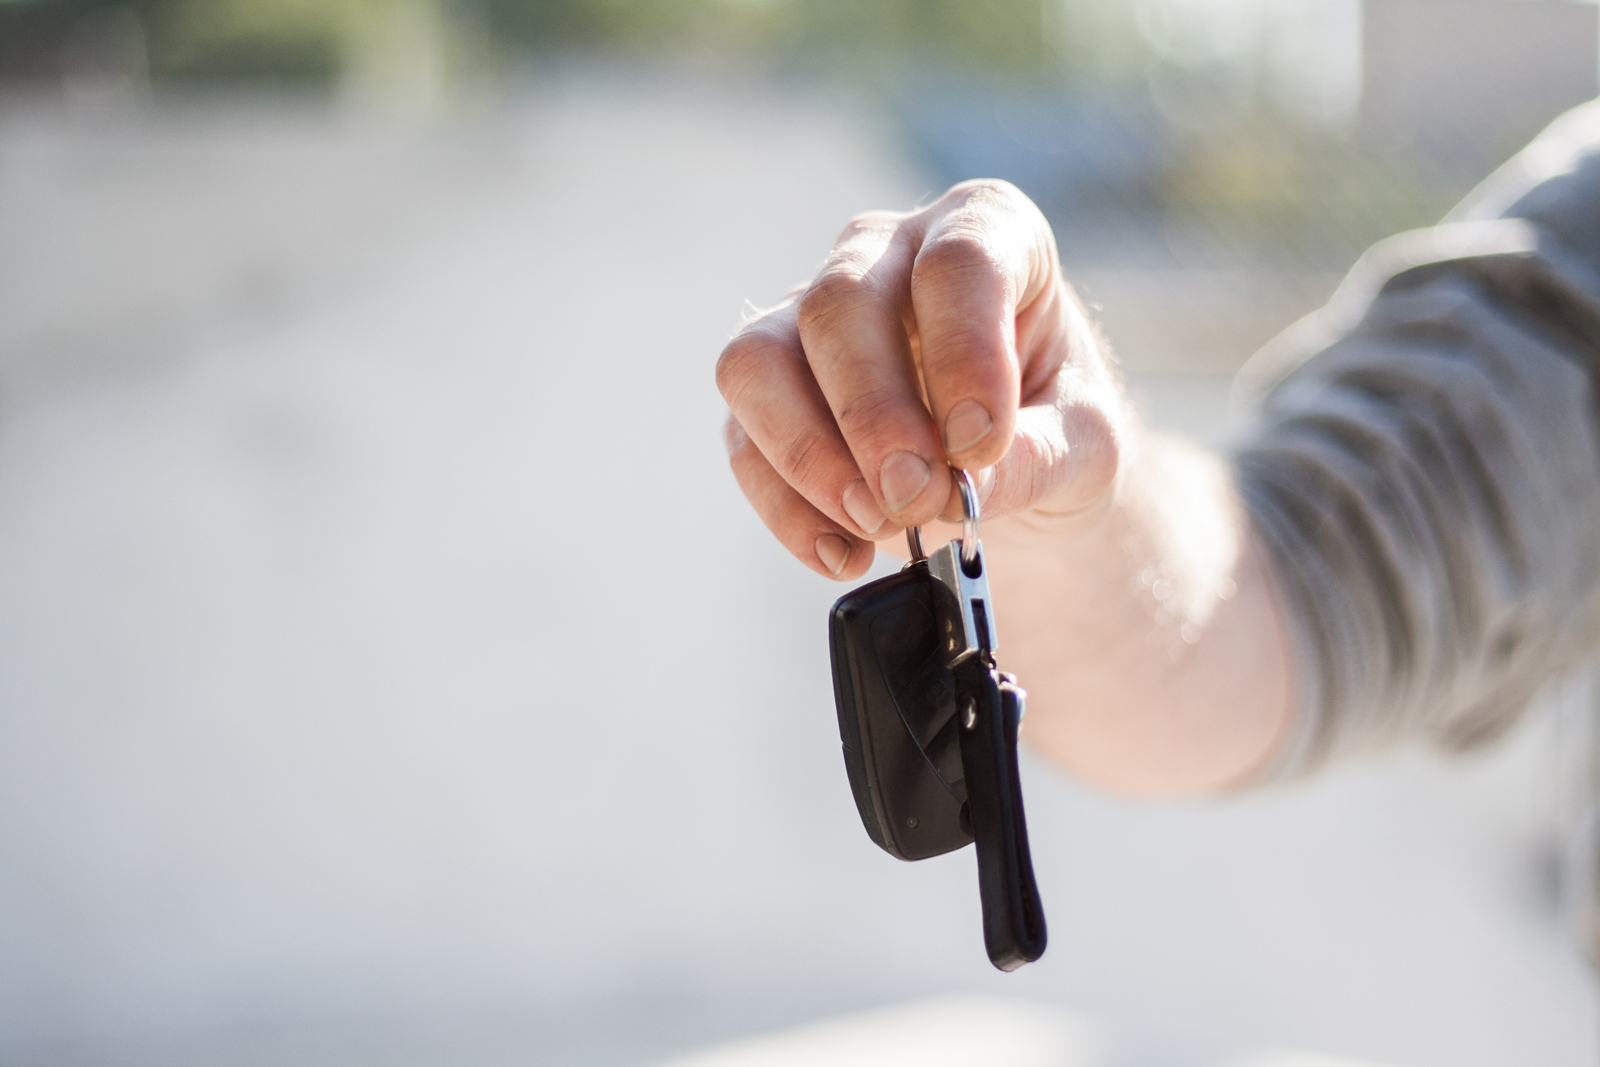 A person holding up a motorhome key